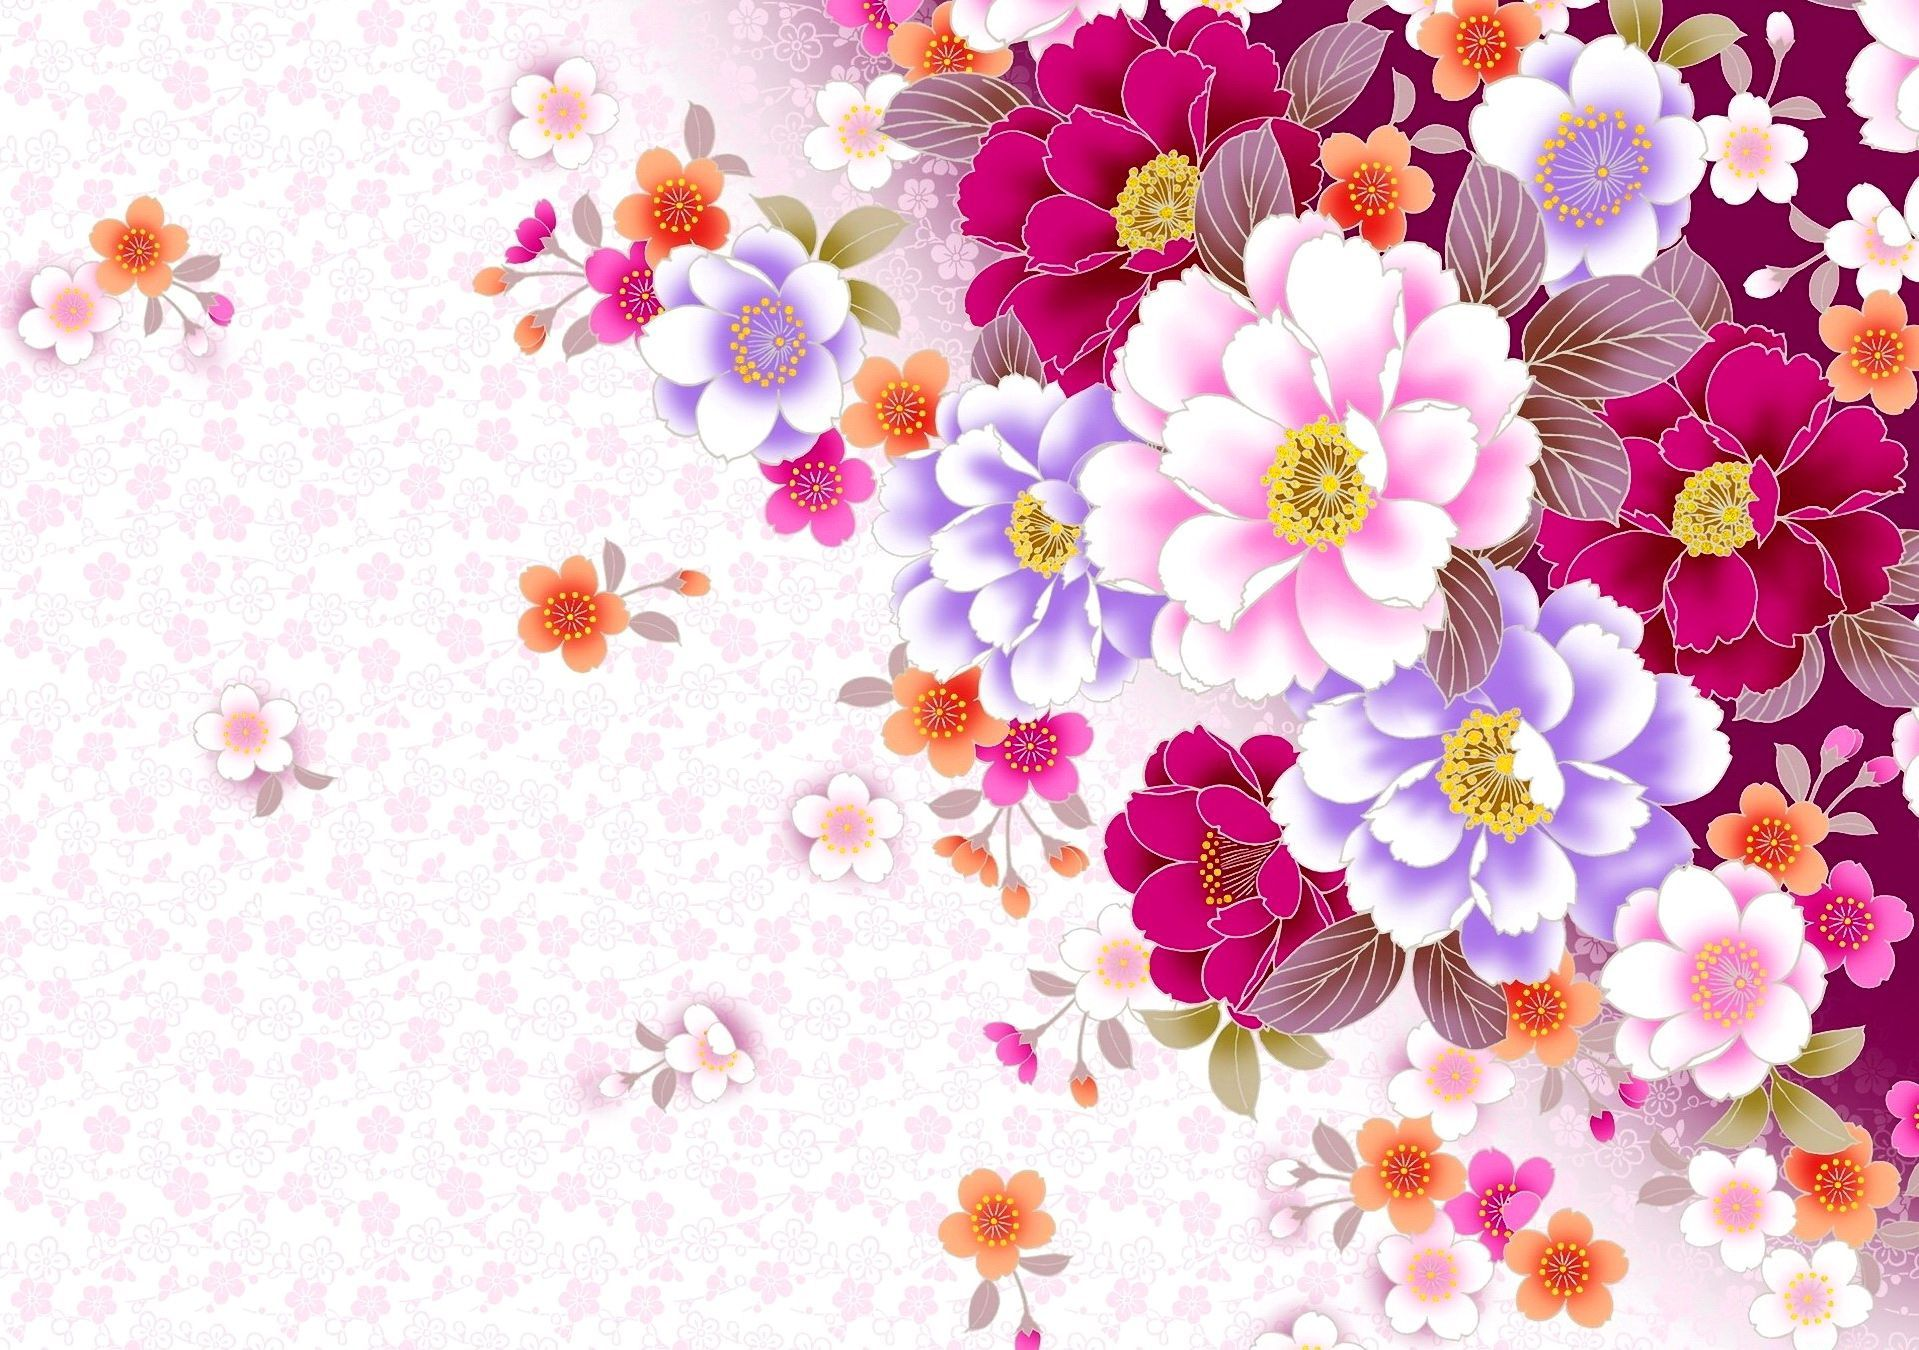 Floral Wallpaper Desktop Sf Wallpaper